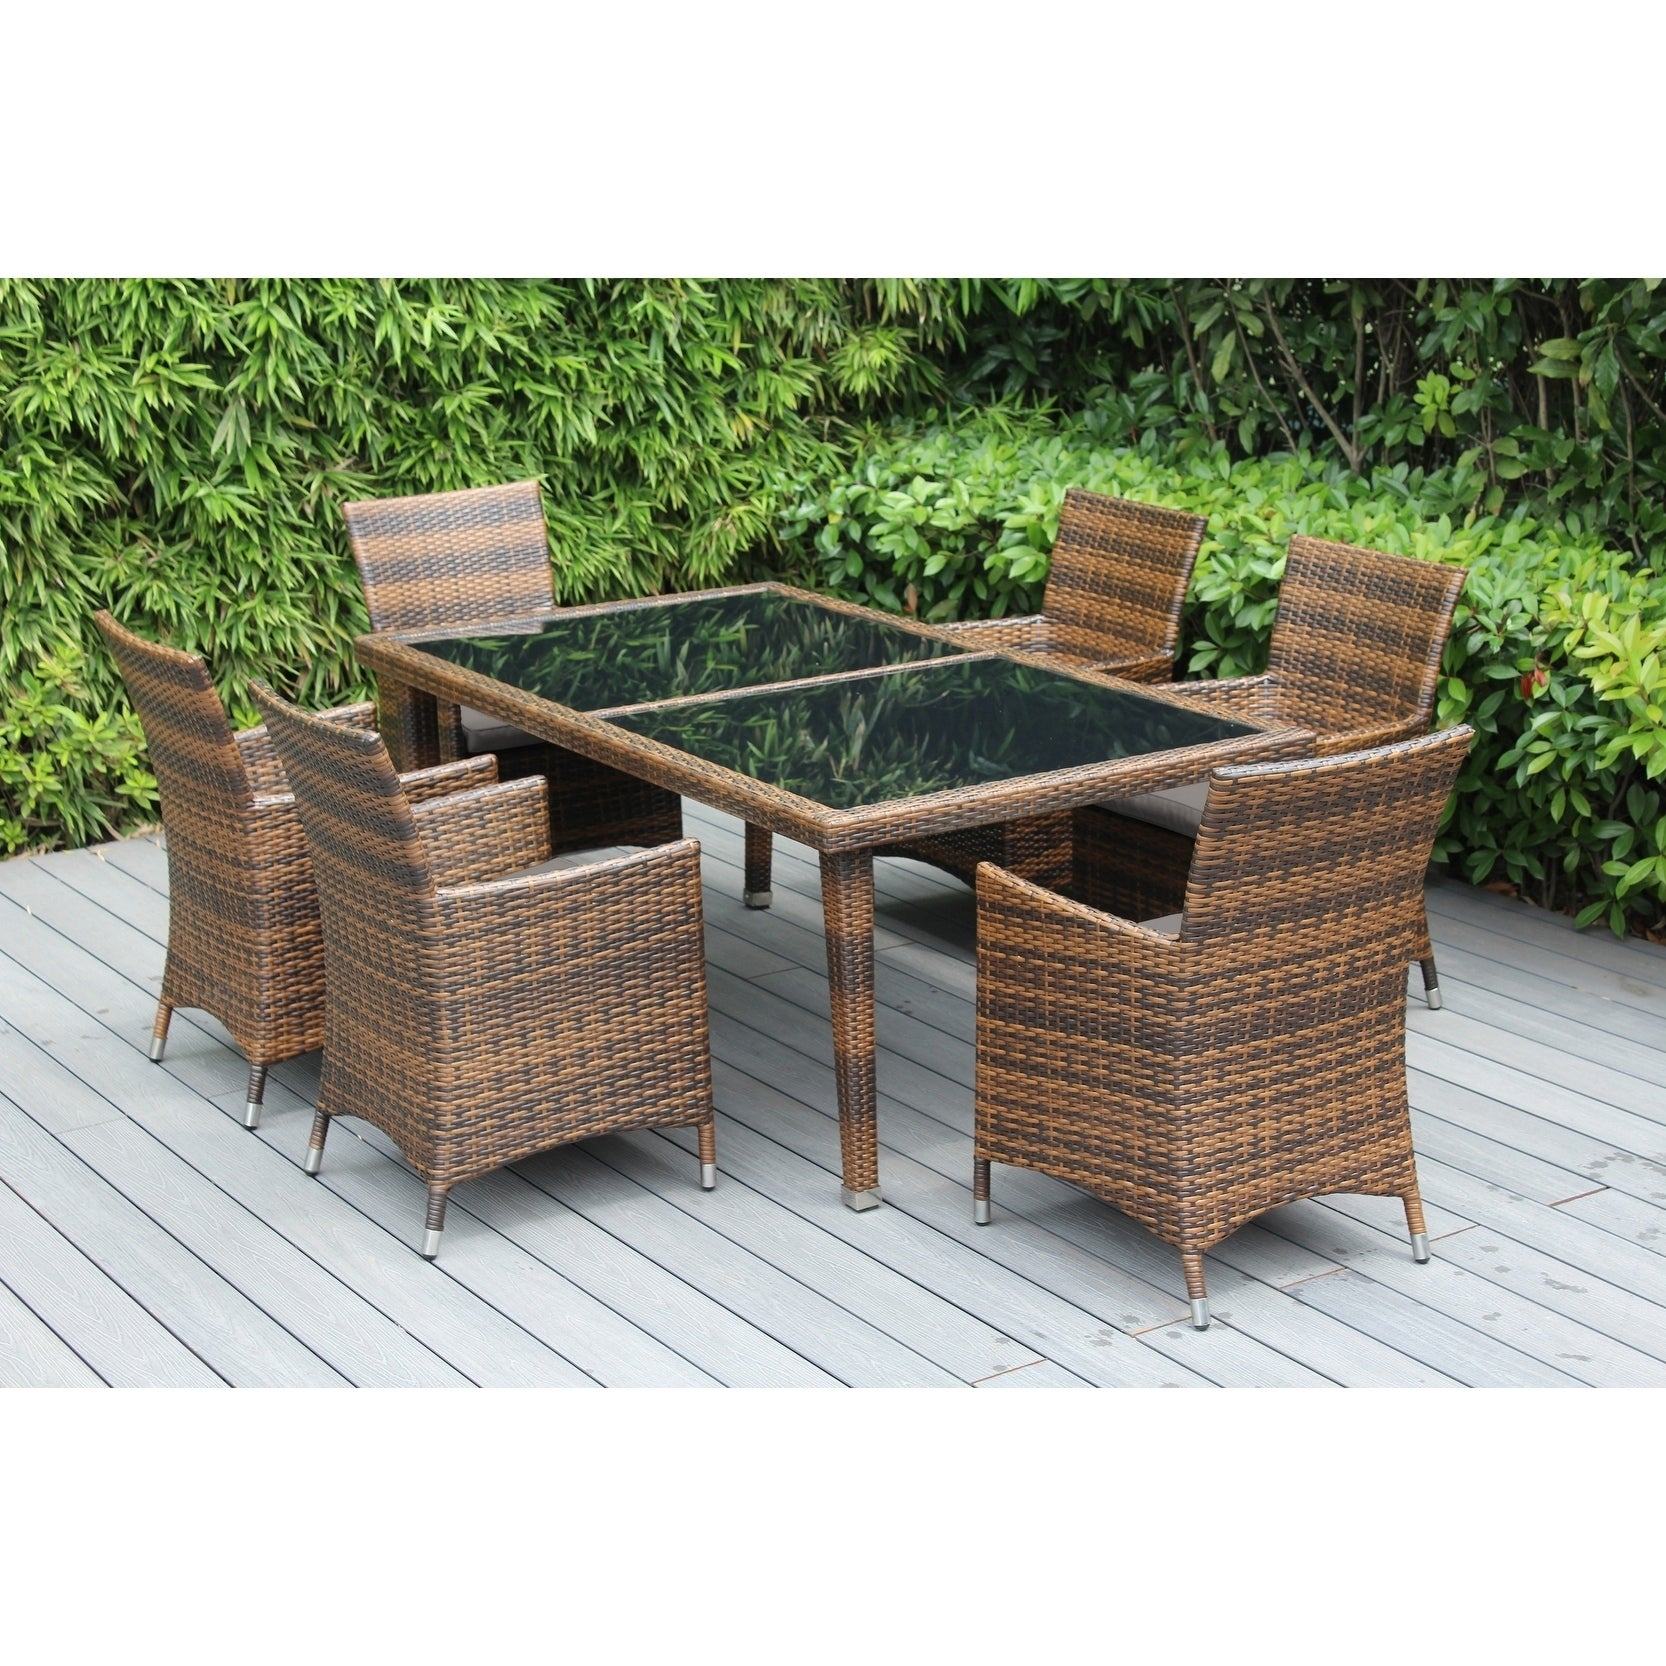 Shop Ohana Outdoor Patio 7 Piece Mixed Brown Wicker Dining Set With  Cushions   Free Shipping Today   Overstock.com   19432756